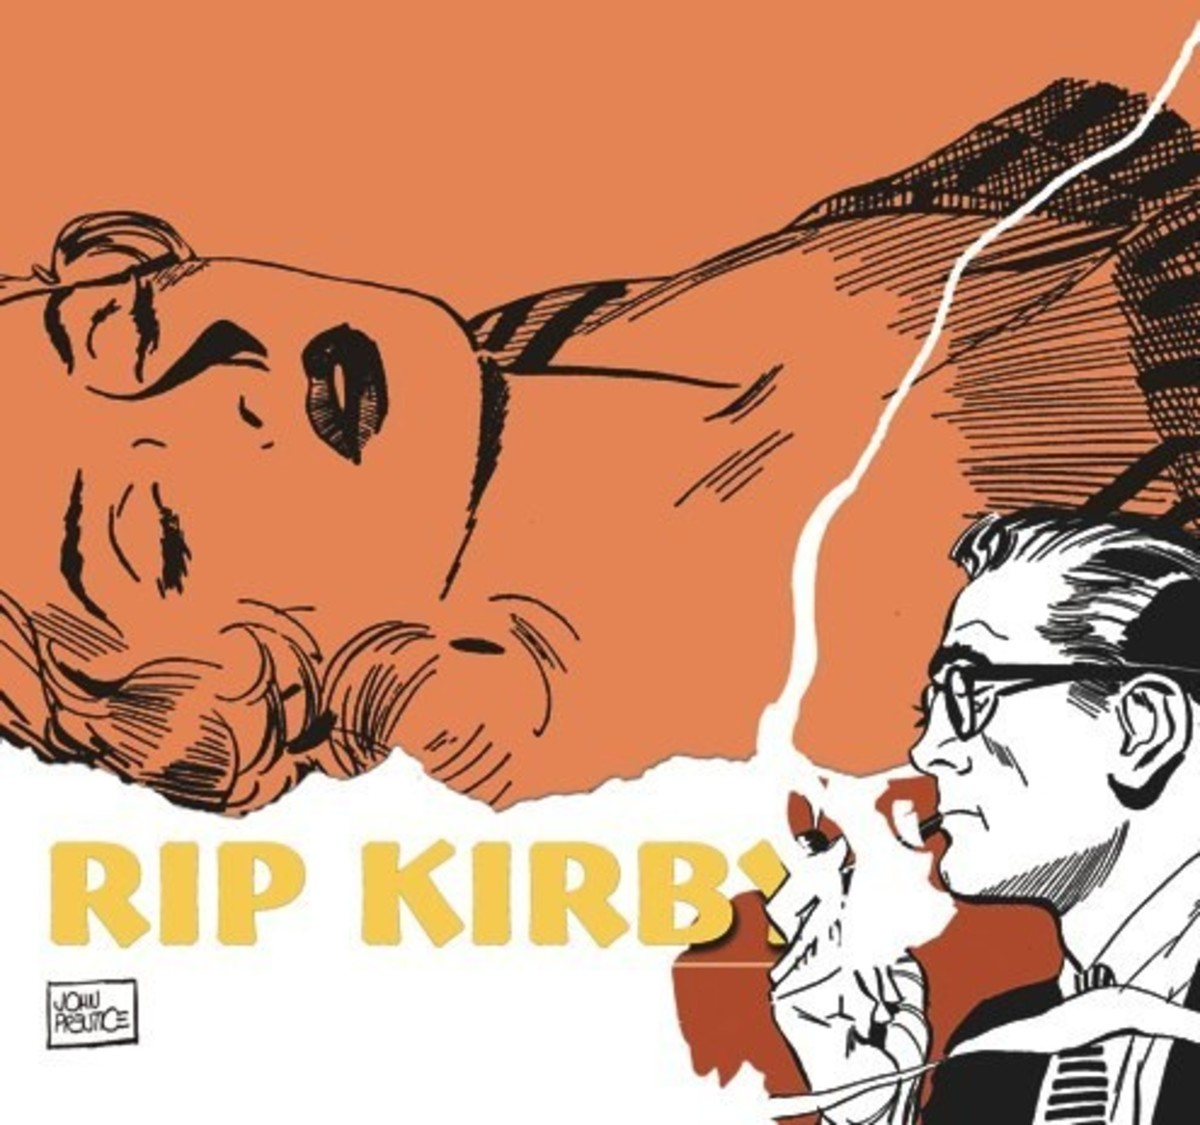 Rip Kirby Vol.6 ( Collected Daily Strips from June 8, 1959 to February 10, 1962.) IDW